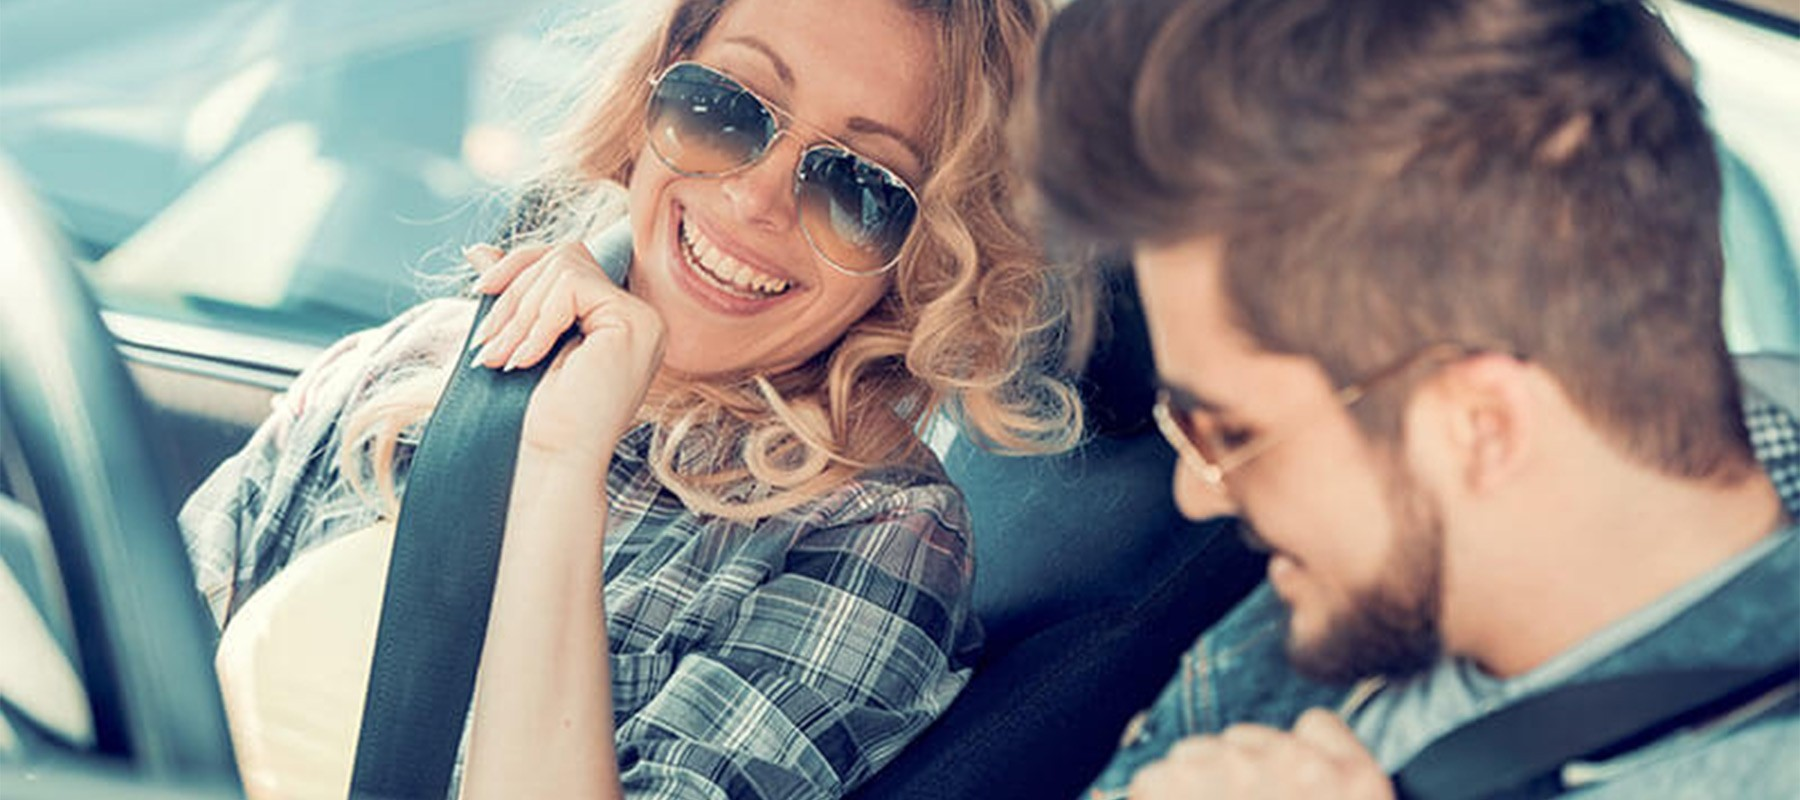 Two People Driving In Convertible Smiling